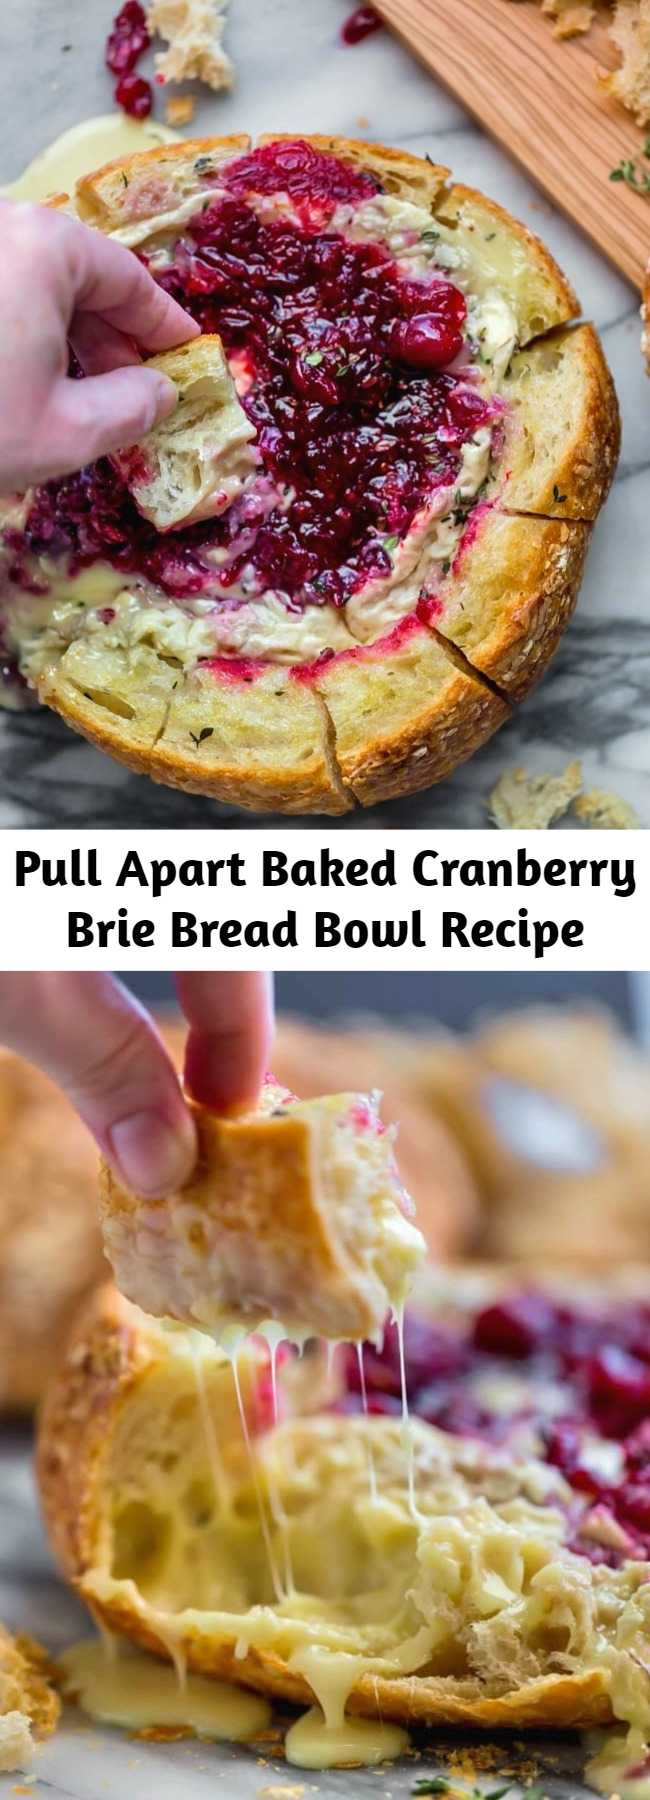 Pull Apart Baked Cranberry Brie Bread Bowl Recipe - This tear apart Baked Cranberry Brie Bread Bowl is a beautiful holiday party appetizer. Melty brie and sweet tart cranberry sauce are a match made in heaven! Great Appetizer for New Years Eve, or Christmas Dinner! #bakedbrie #breadbowl #appetizer #bread #thanksgiving #thanksgivingrecipes #holiday #holidayrecipe #cranberry #brie #recipe #easyrecipe #christmasrecipe #newyearsrecipe